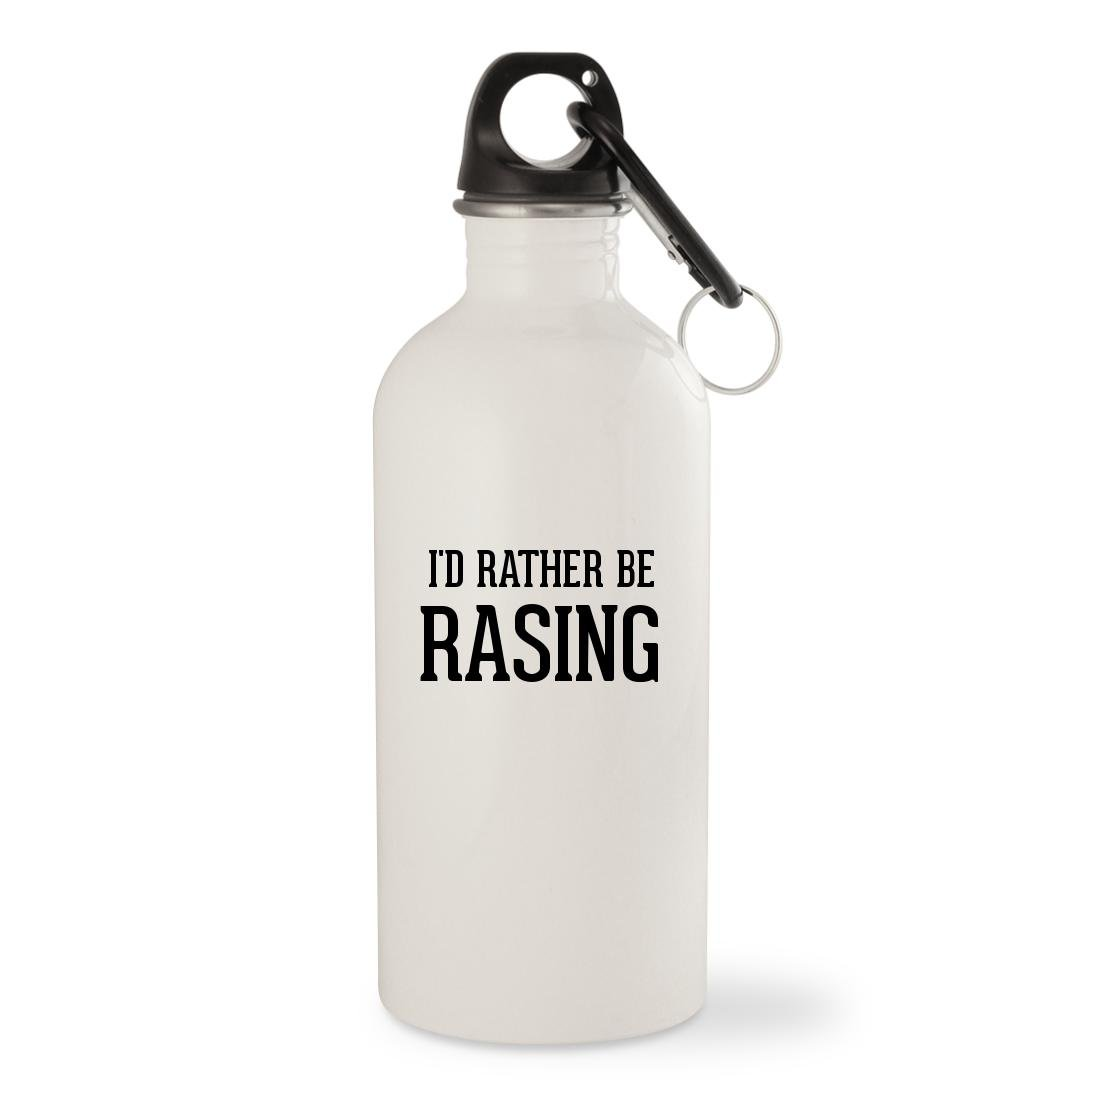 I'd Rather Be RASING - White 20oz Stainless Steel Water Bottle with Carabiner